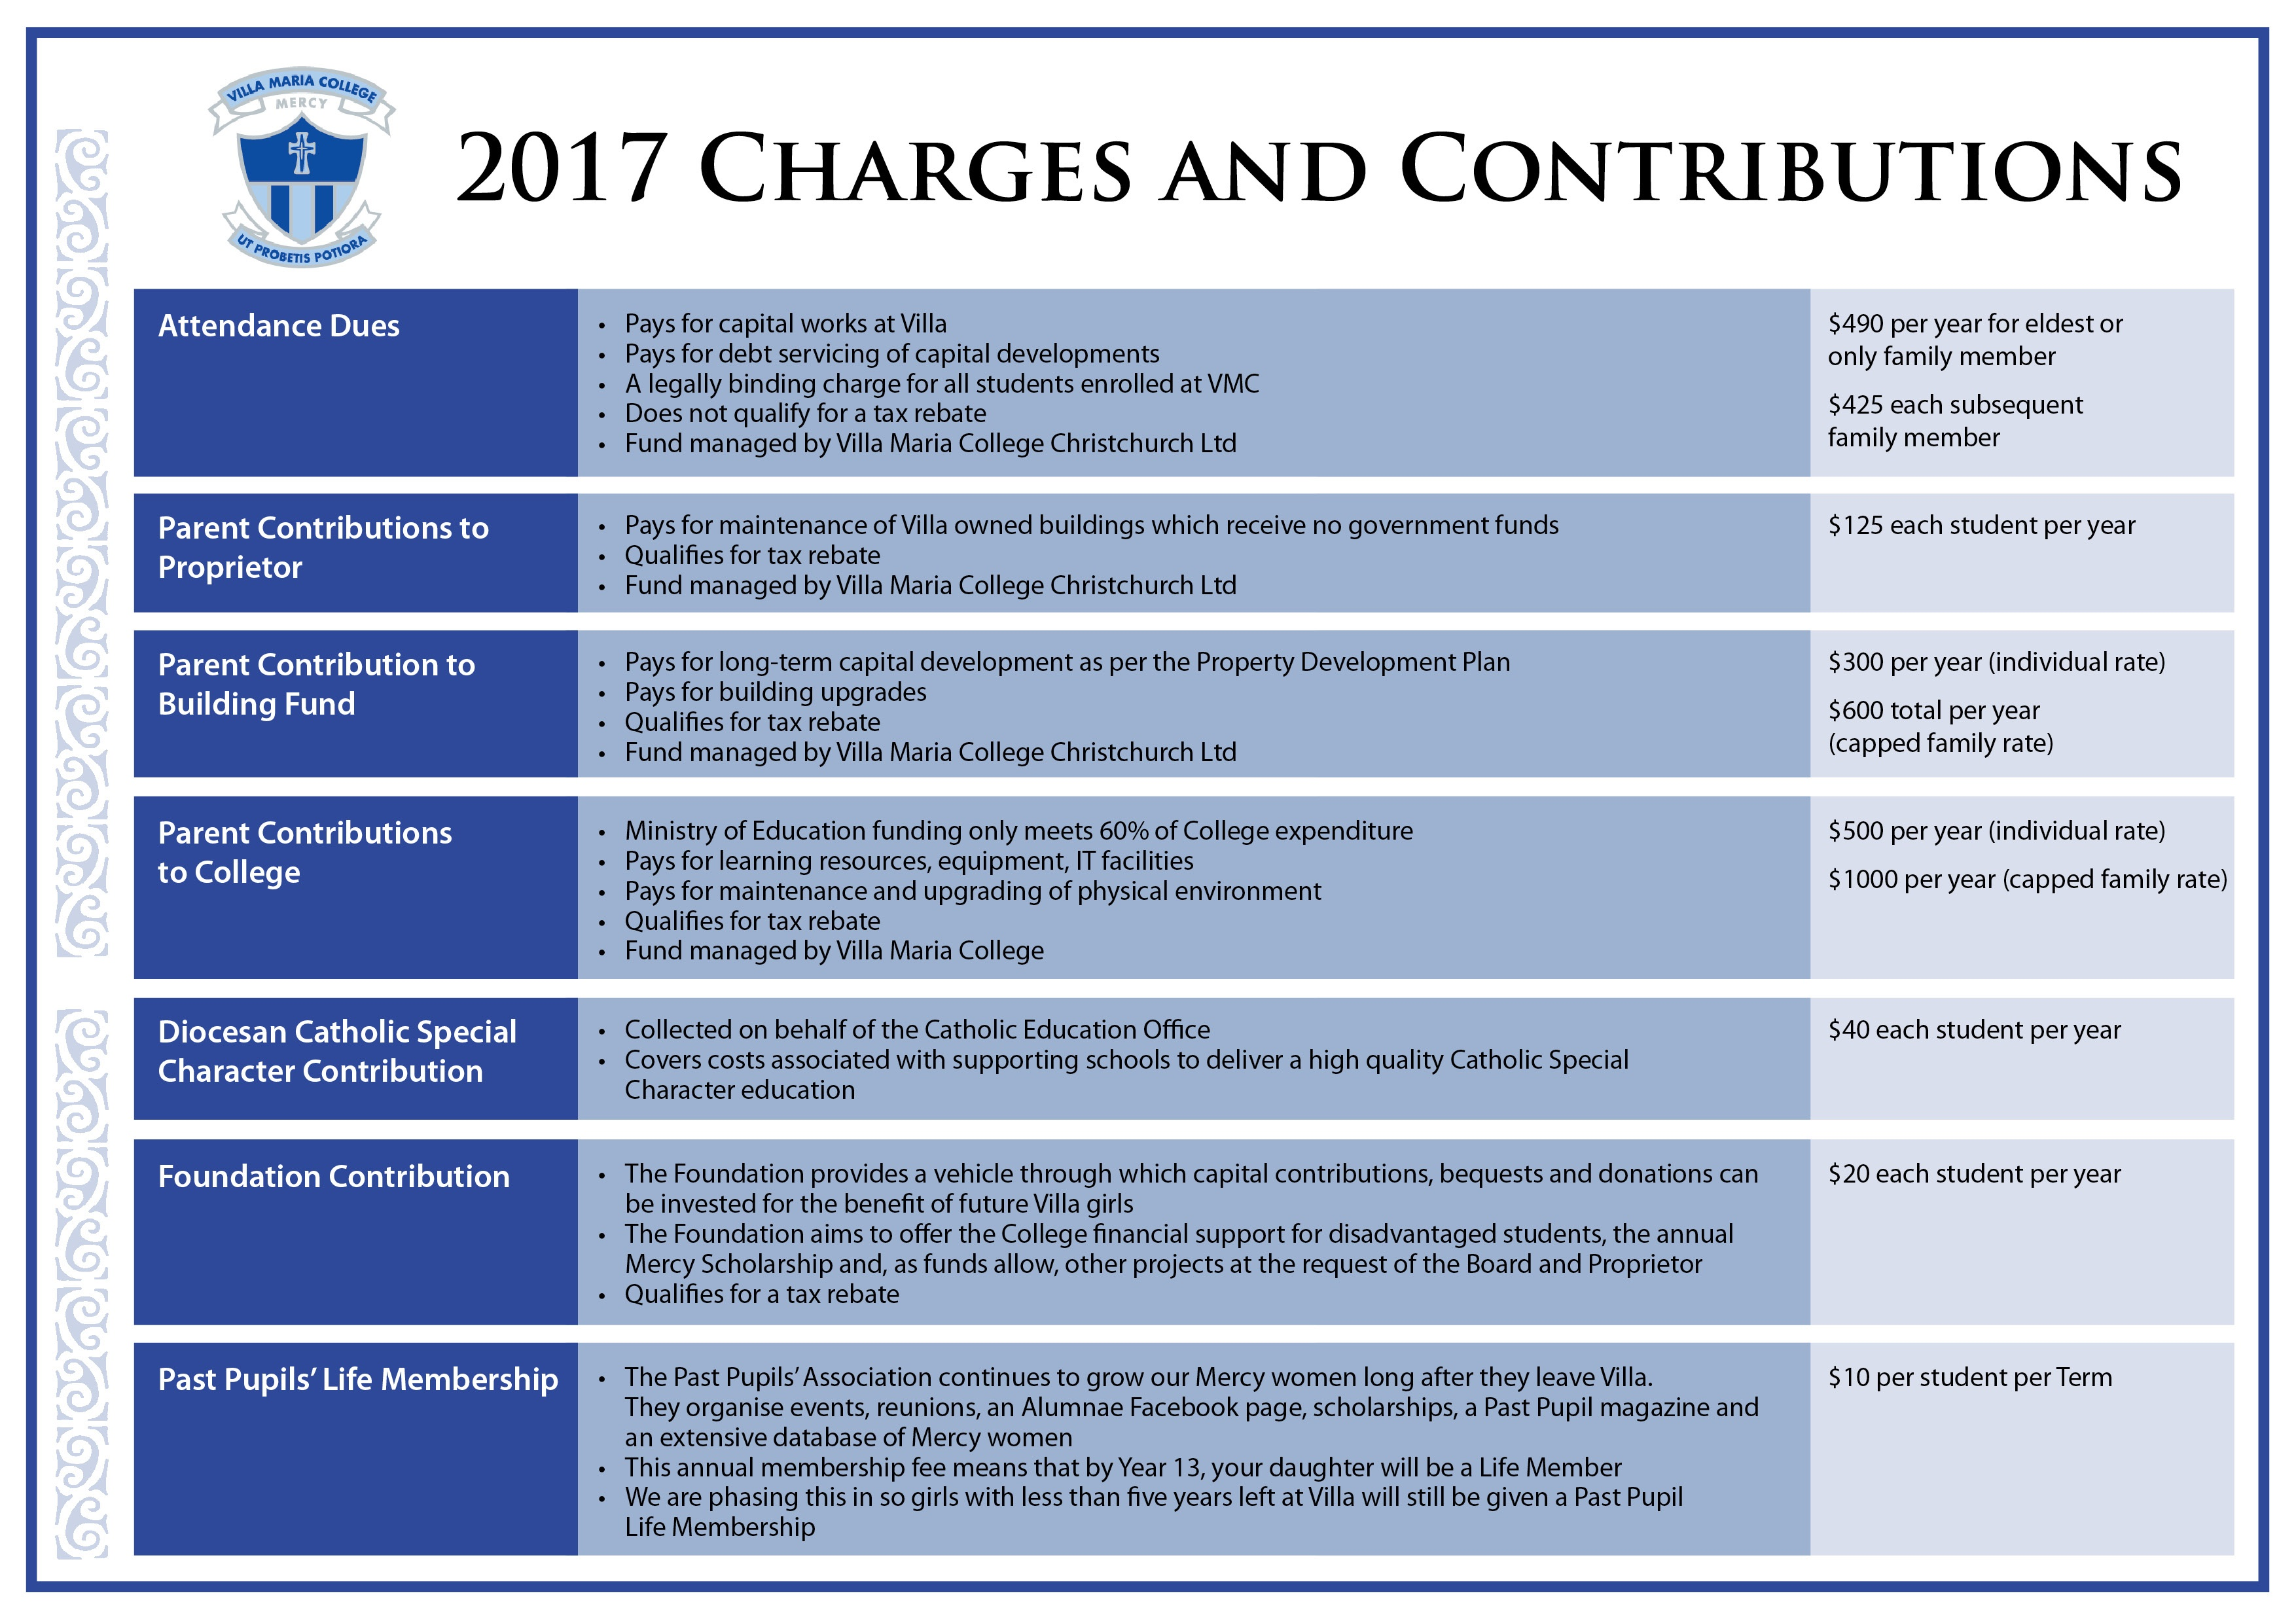 villa-2017-charges-and-contributions-v2